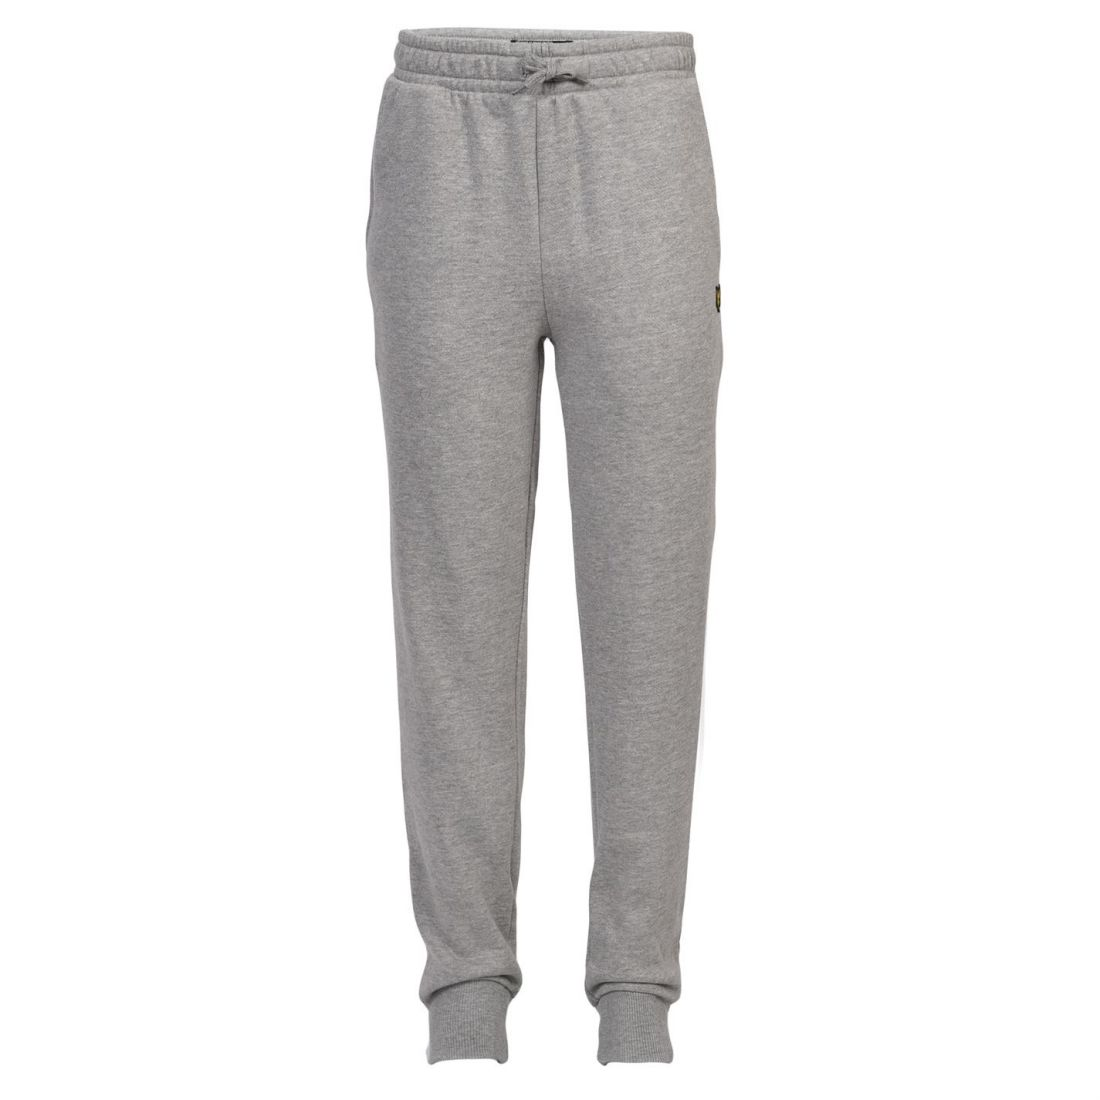 on sale da37e 6250f Image is loading Lyle-and-Scott-Kids-Classic-Jogging-Bottoms-Sweat-